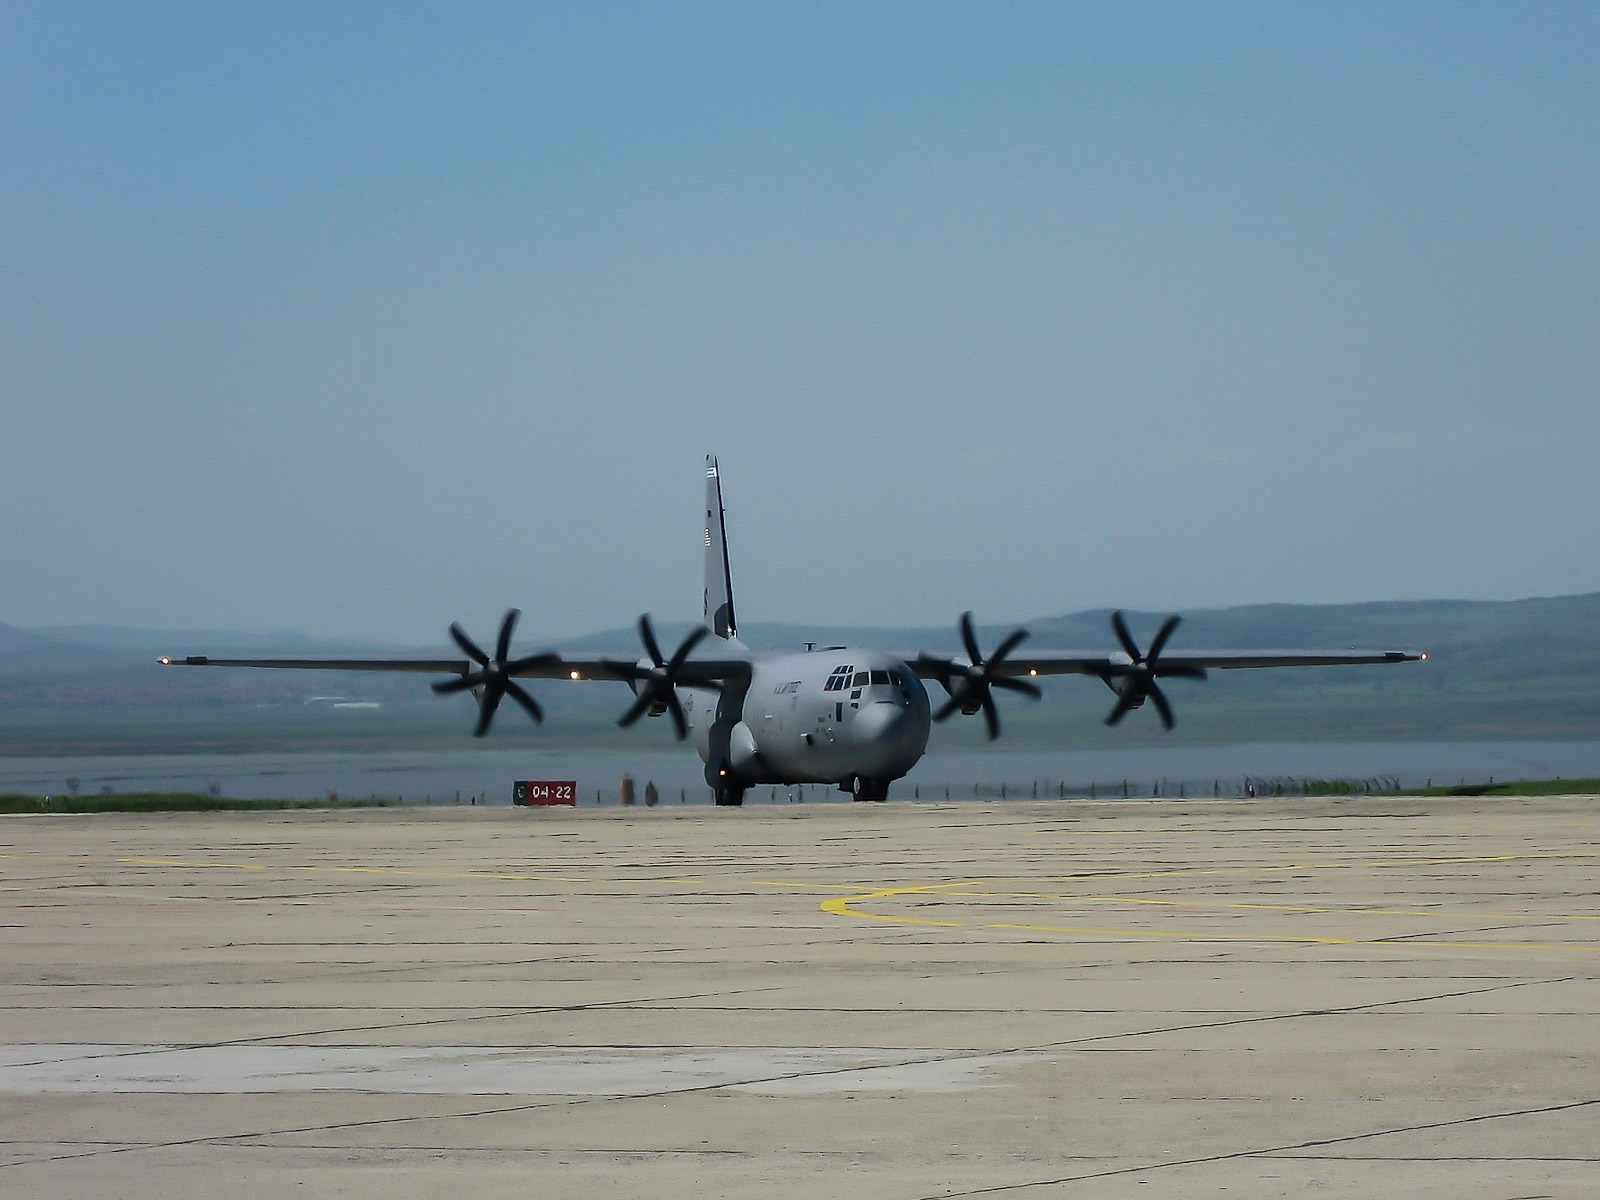 C-130 Hercules at the Burgas airport